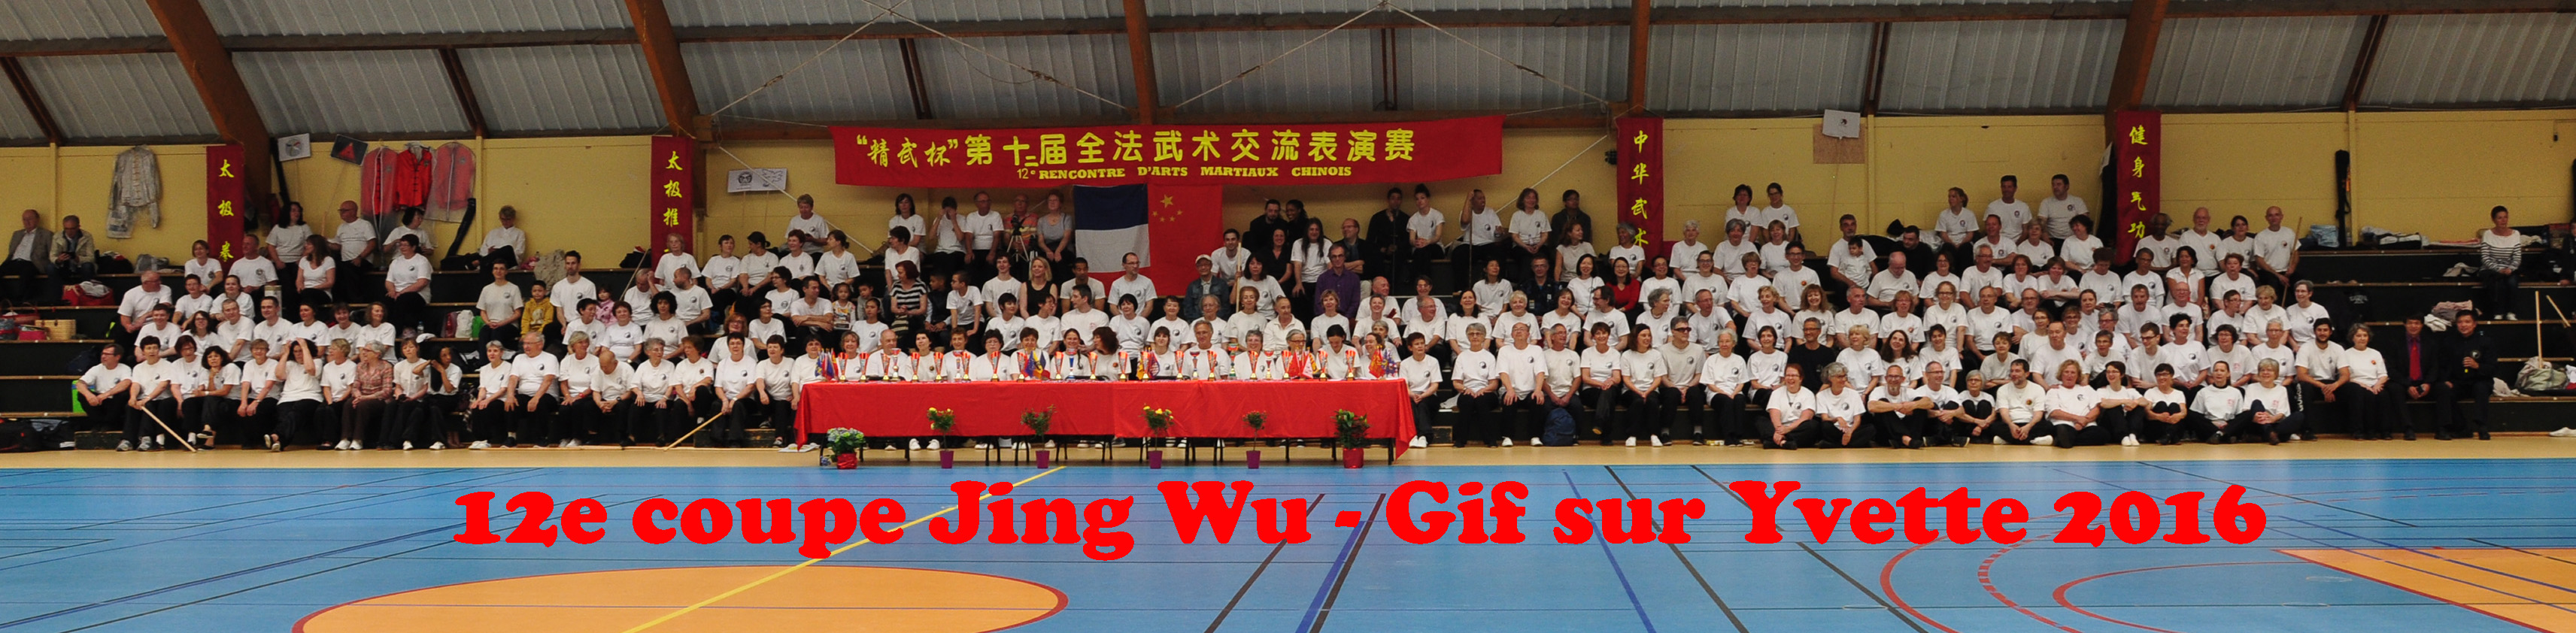 Photo de groupe de la coupe Jing Wu 2016